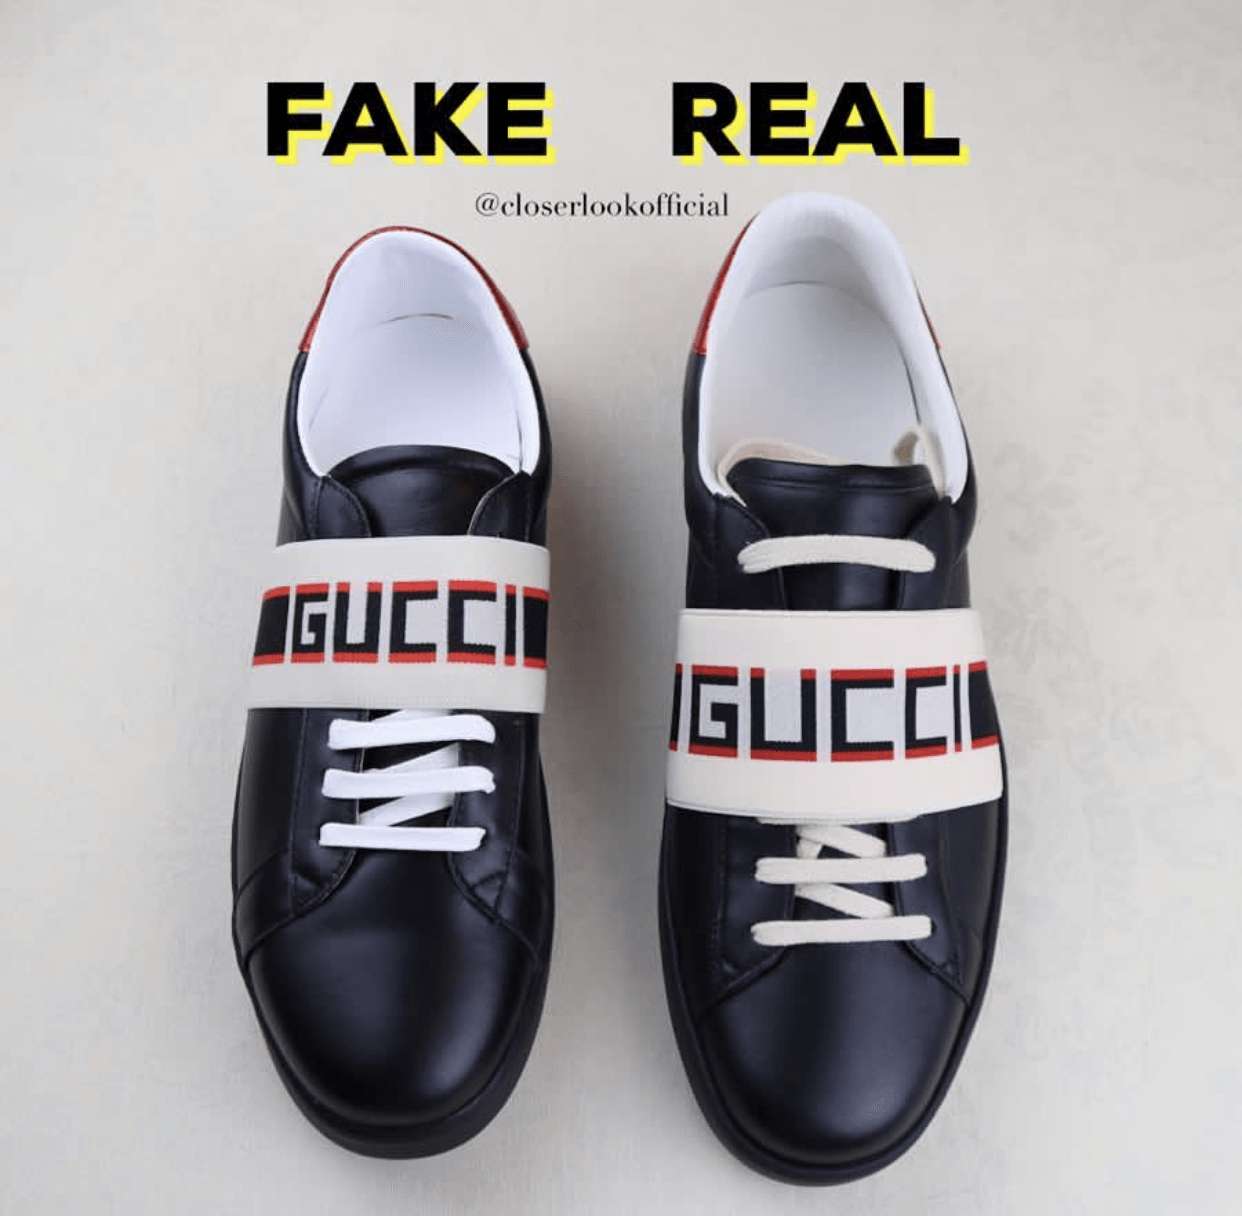 f509df6ea6a The shape from a side view of this sneakers reveals clearly their  differences. The fake pairs are shorter and as you can see the Gucci Logo  cannot be seen ...